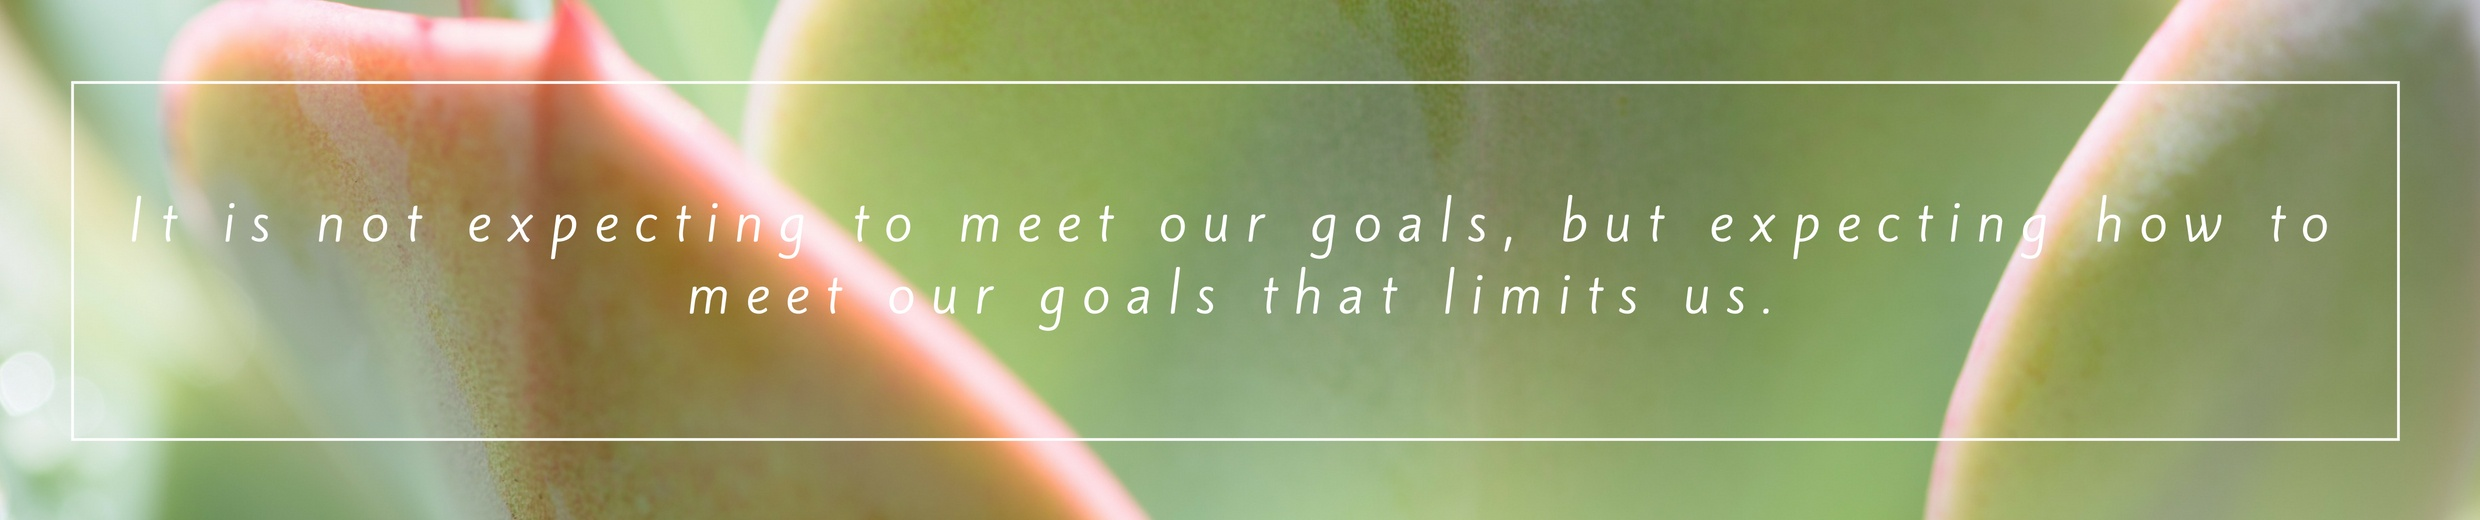 It is not expecting to meet our goals, but expecting how to meet our goals that limits us.